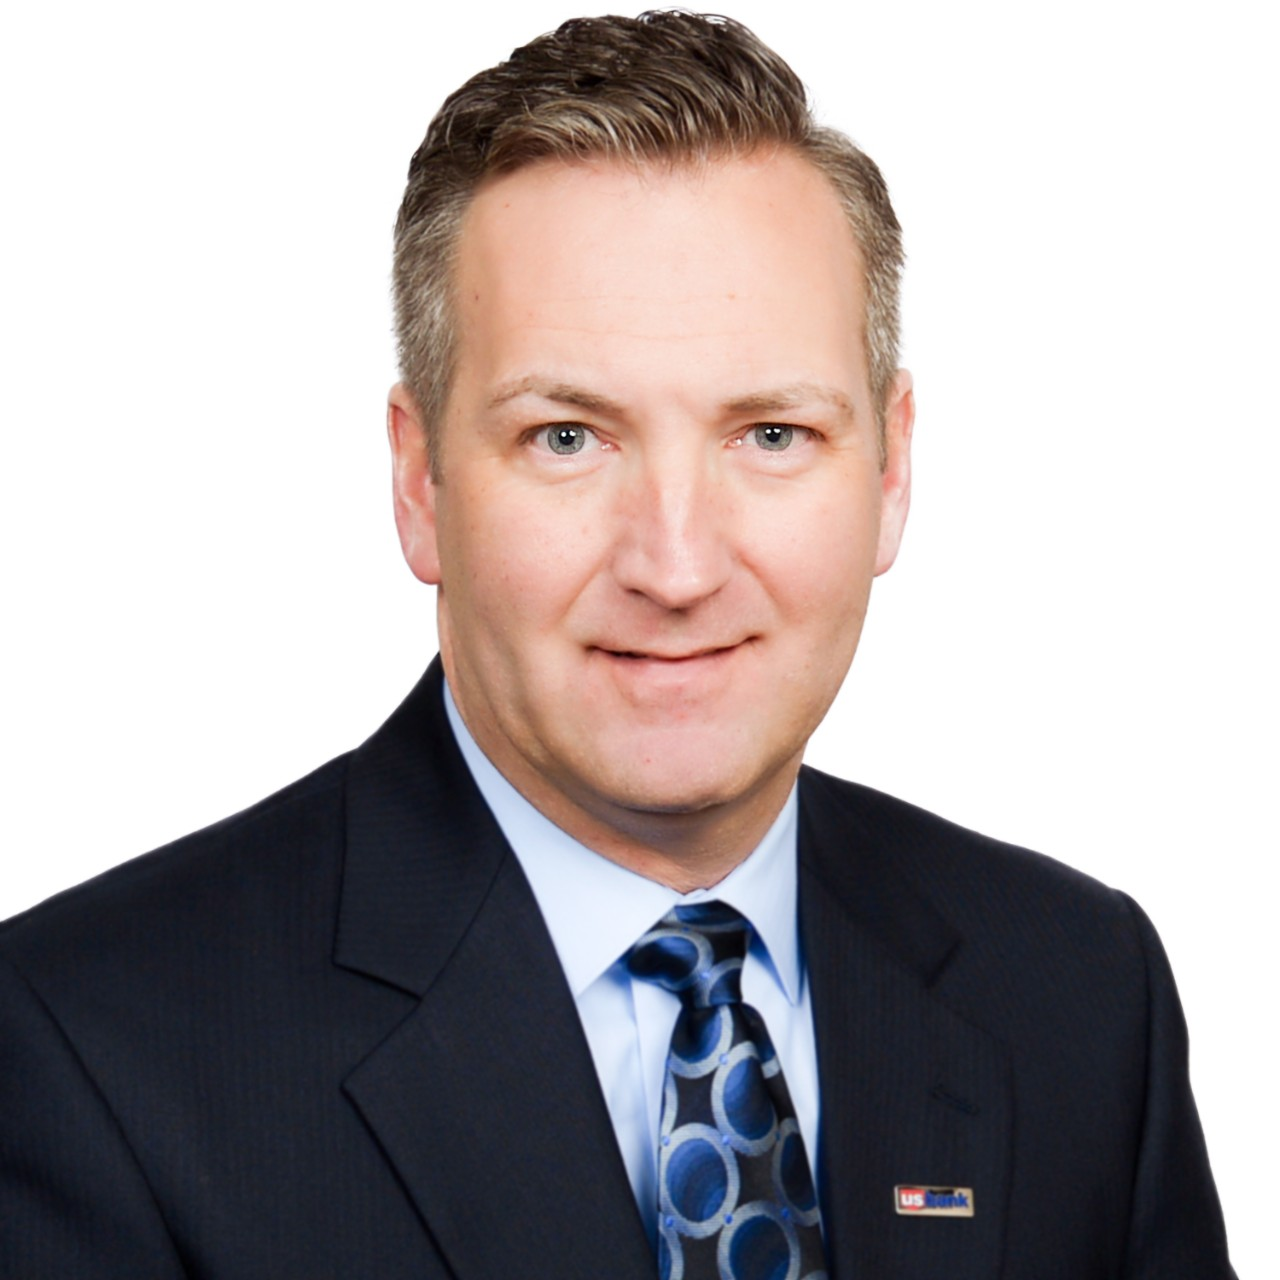 Brent Maltby | PCG Trust Relationship Mgr | Vancouver, WA | U.S. Bancorp Wealth Management